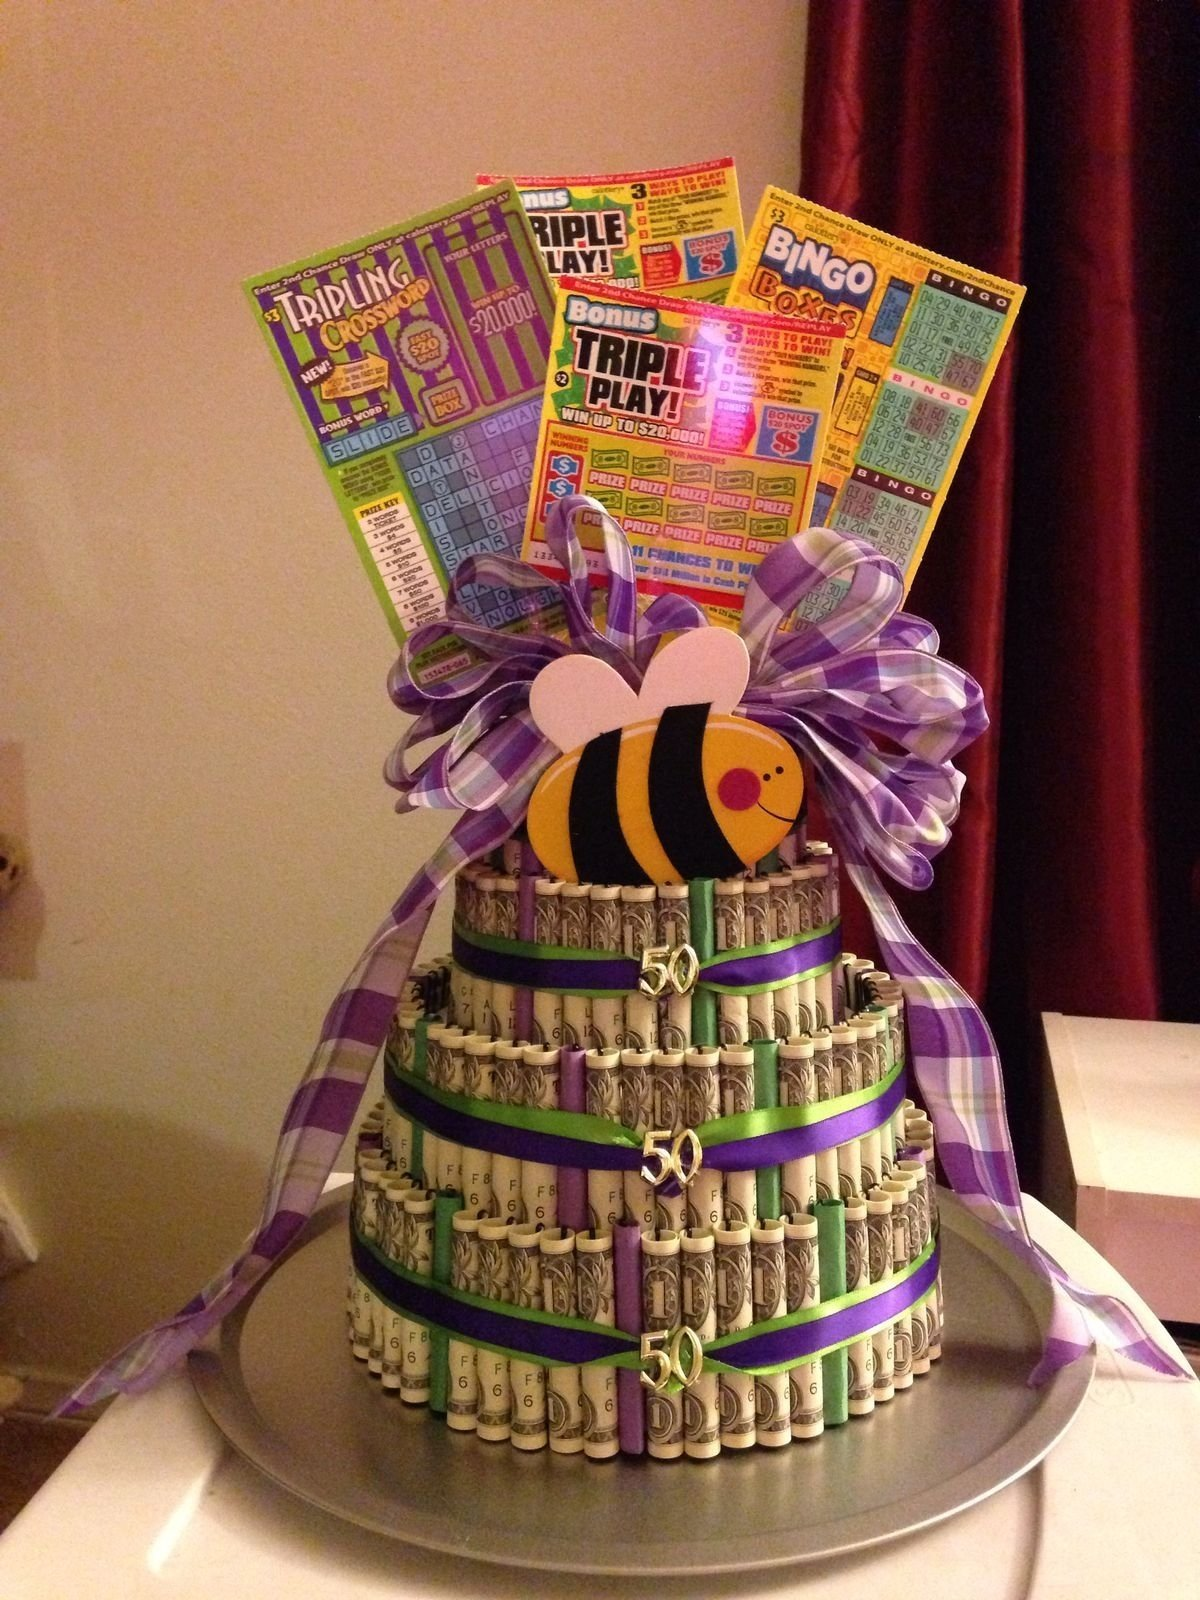 10 Lovely 50Th Birthday Gift Ideas For Mom 237d1692748f76ce427b9e614f9689ff 1200x1600 Pixels Cake